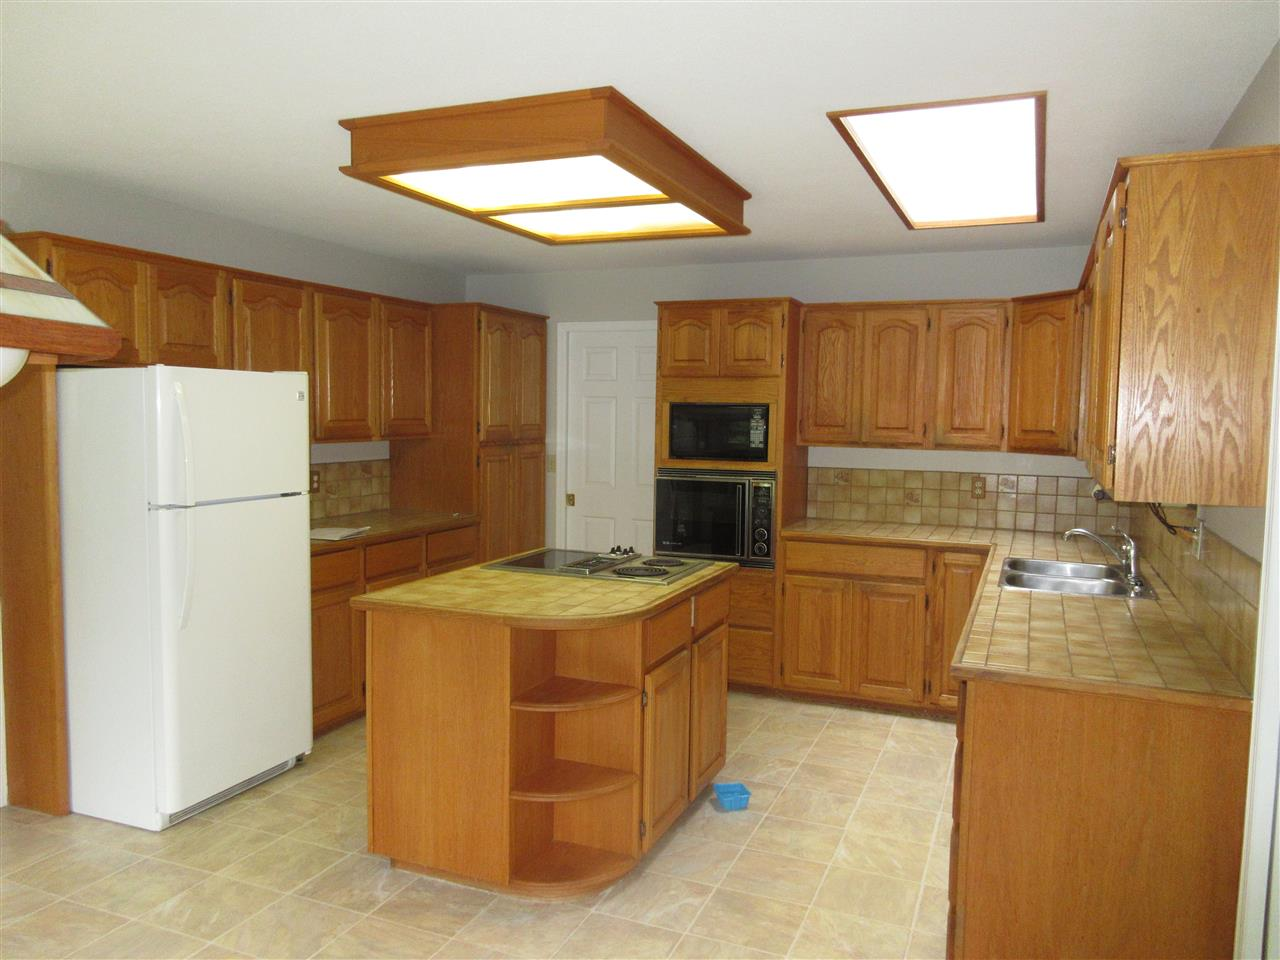 Photo 13: 45625 WORTHINGTON Place in Sardis: Sardis West Vedder Rd House for sale : MLS(r) # R2176017